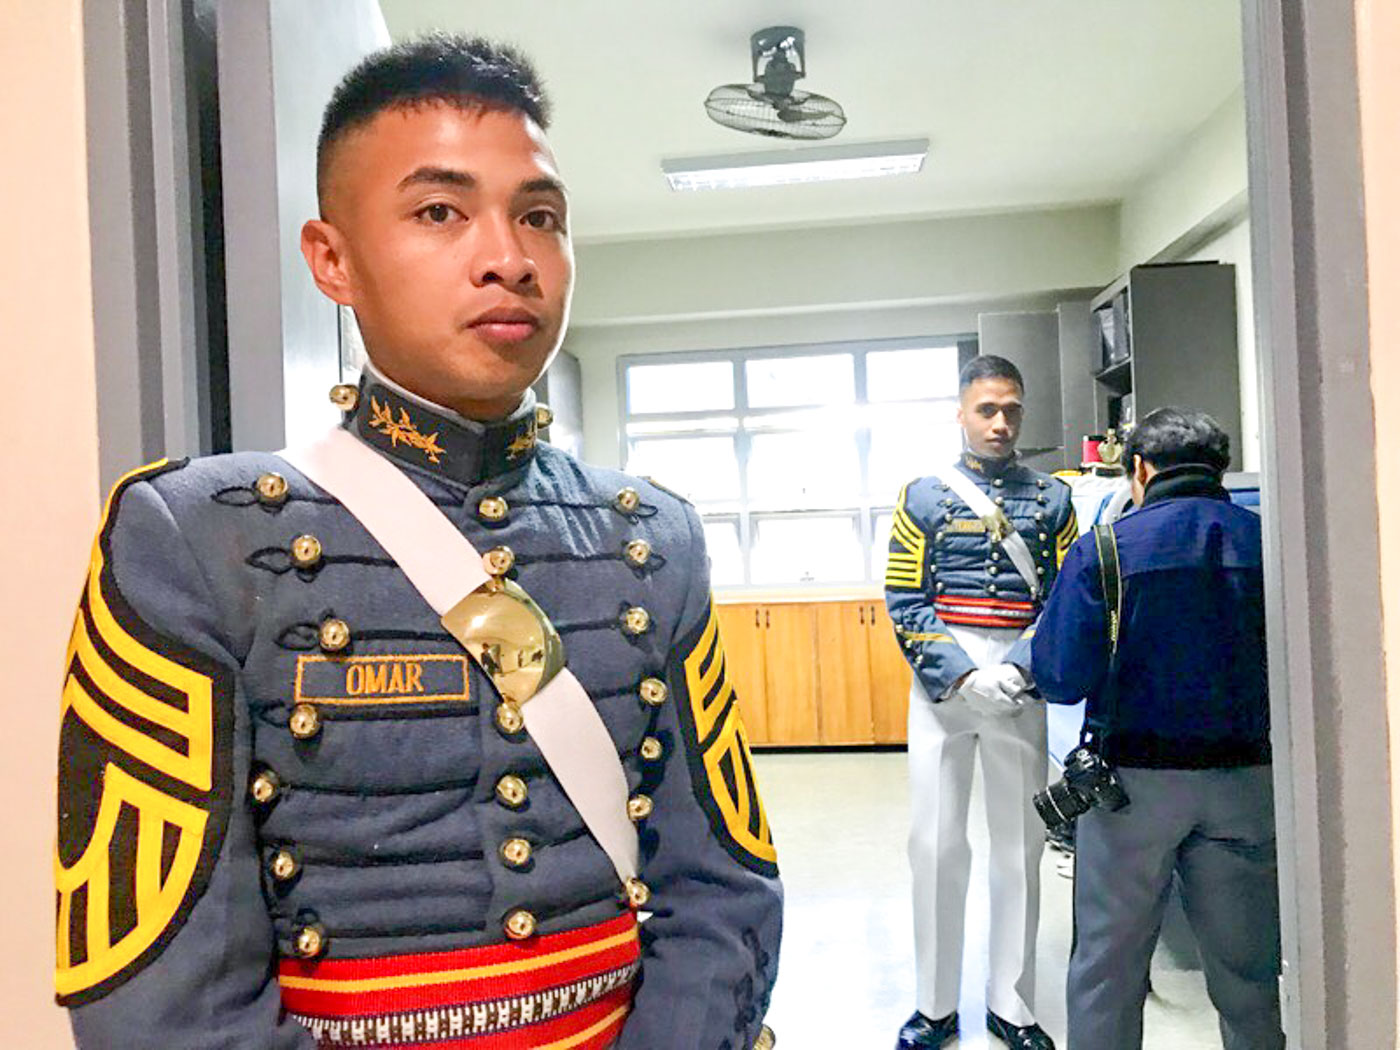 IN PHOTOS: Inside the Philippine Military Academy barracks